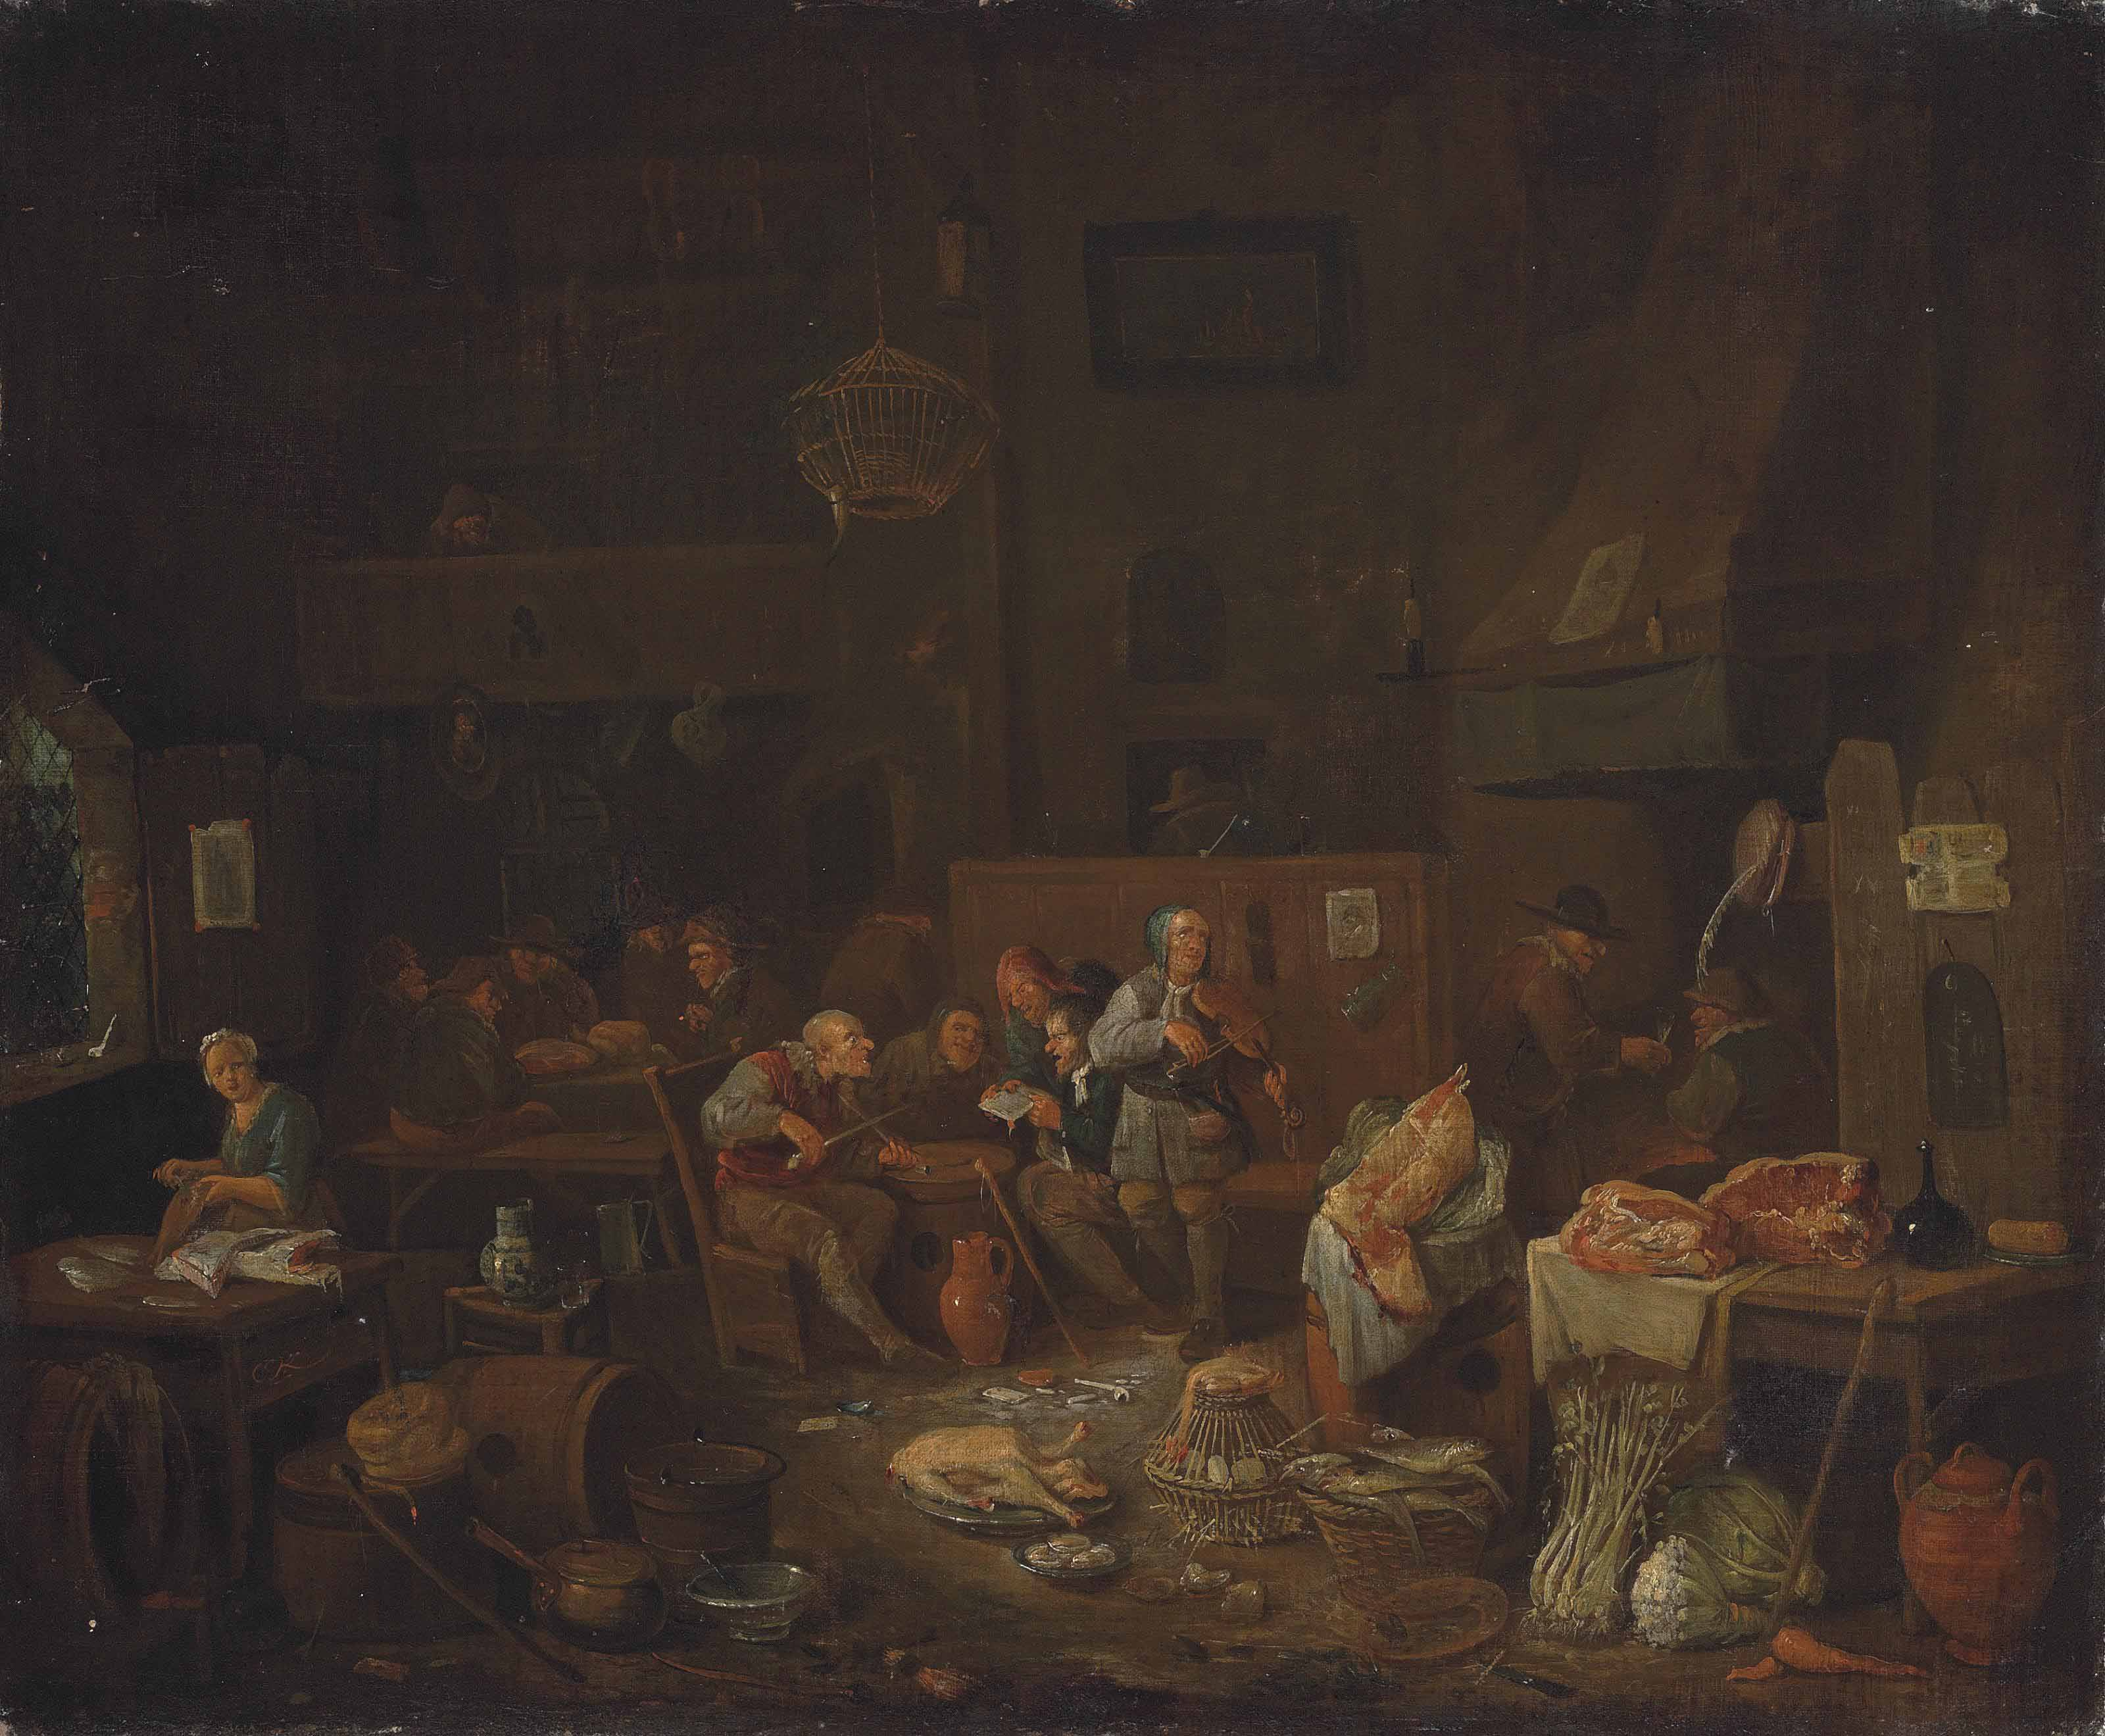 Peasants smoking and making merry in a kitchen interior